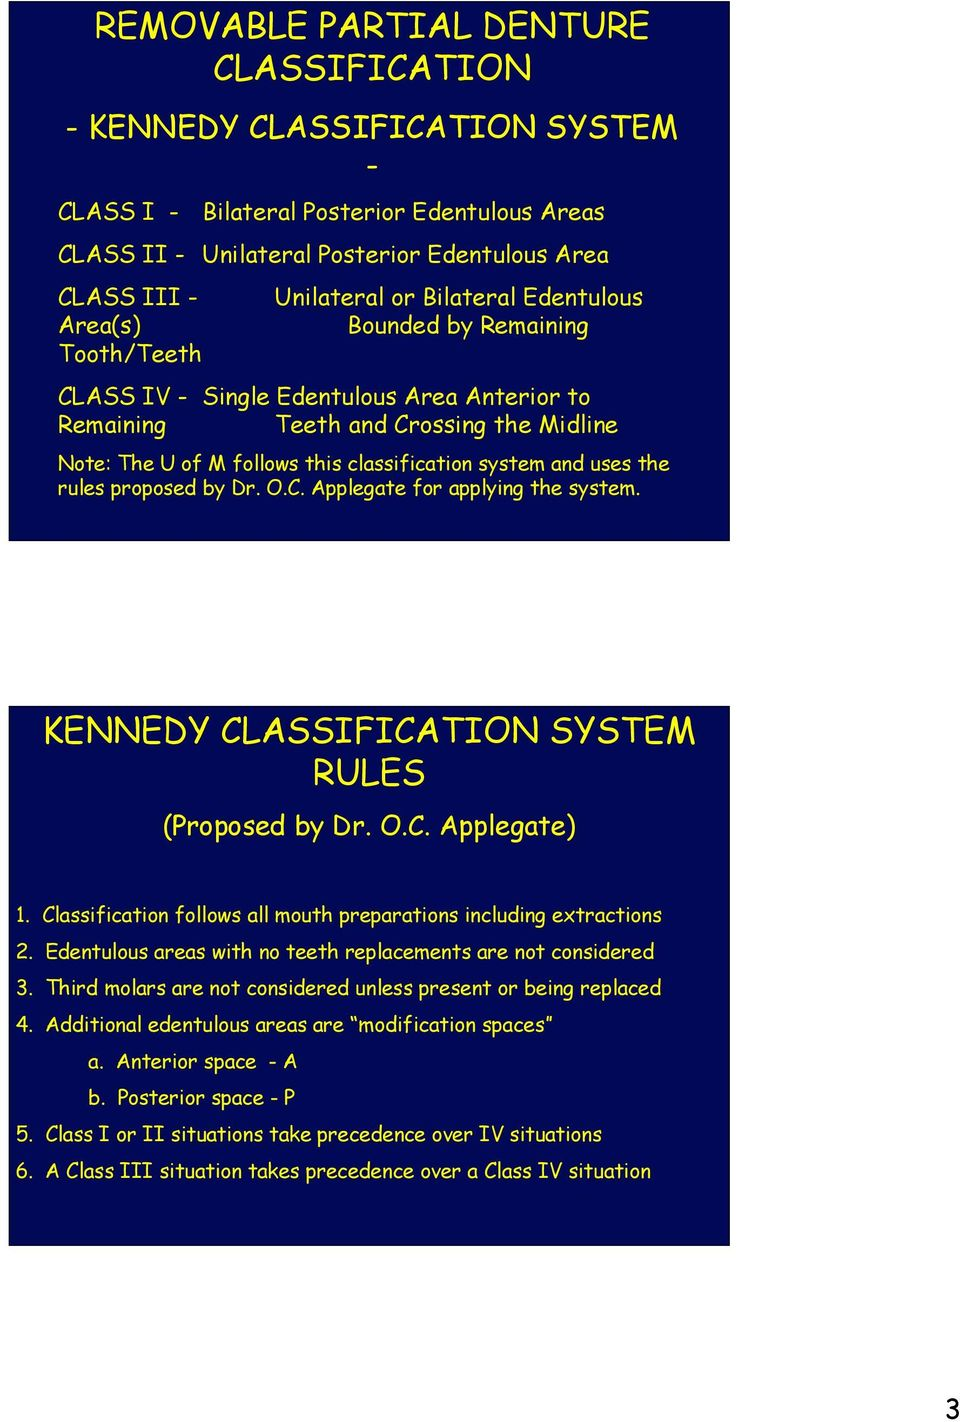 CLASSIFICATION OF REMOVABLE PARTIAL DENTURES - PDF